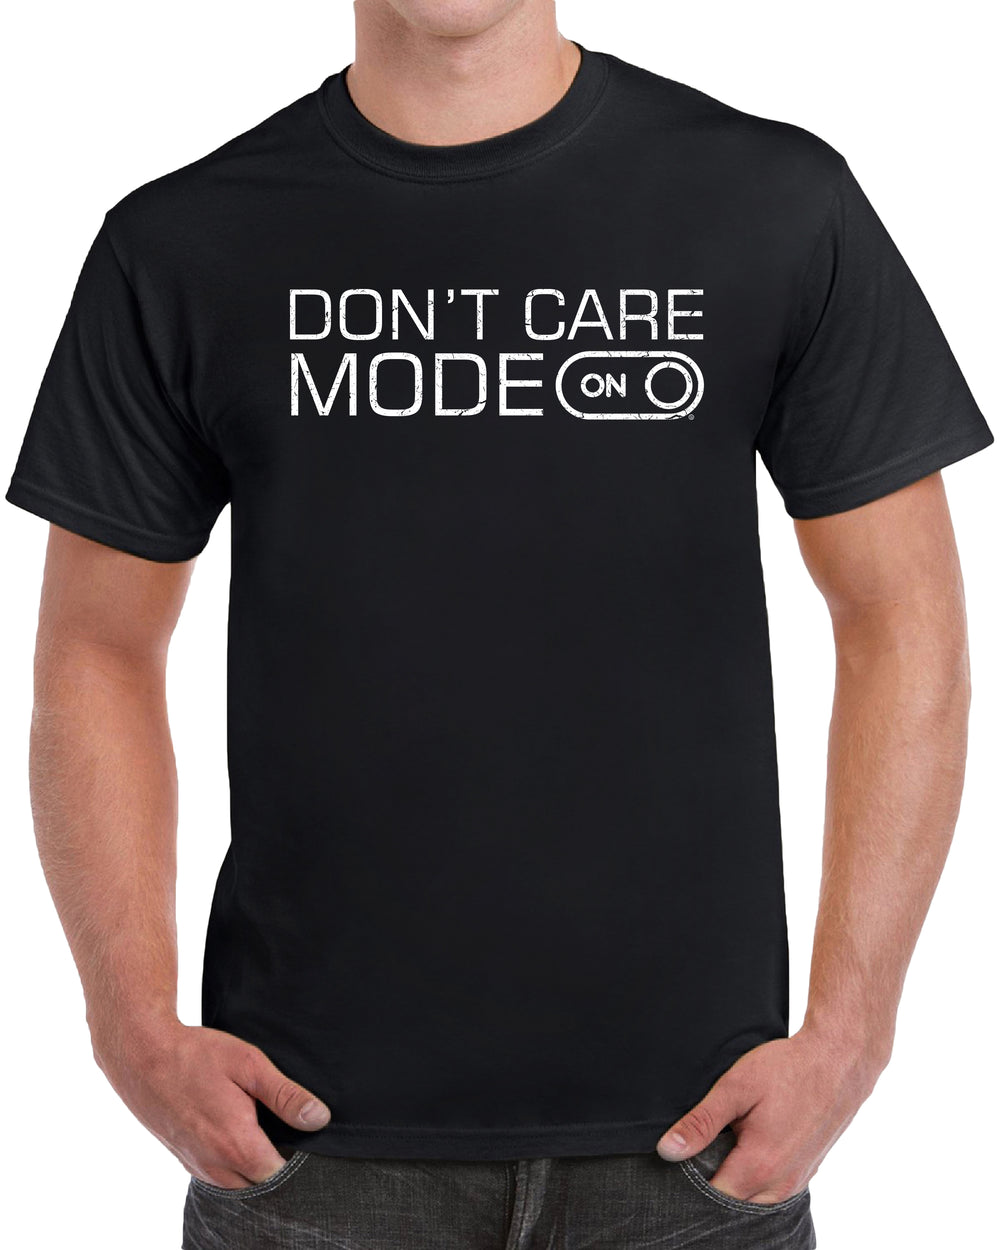 Don't Care Mode On - Distressed Print